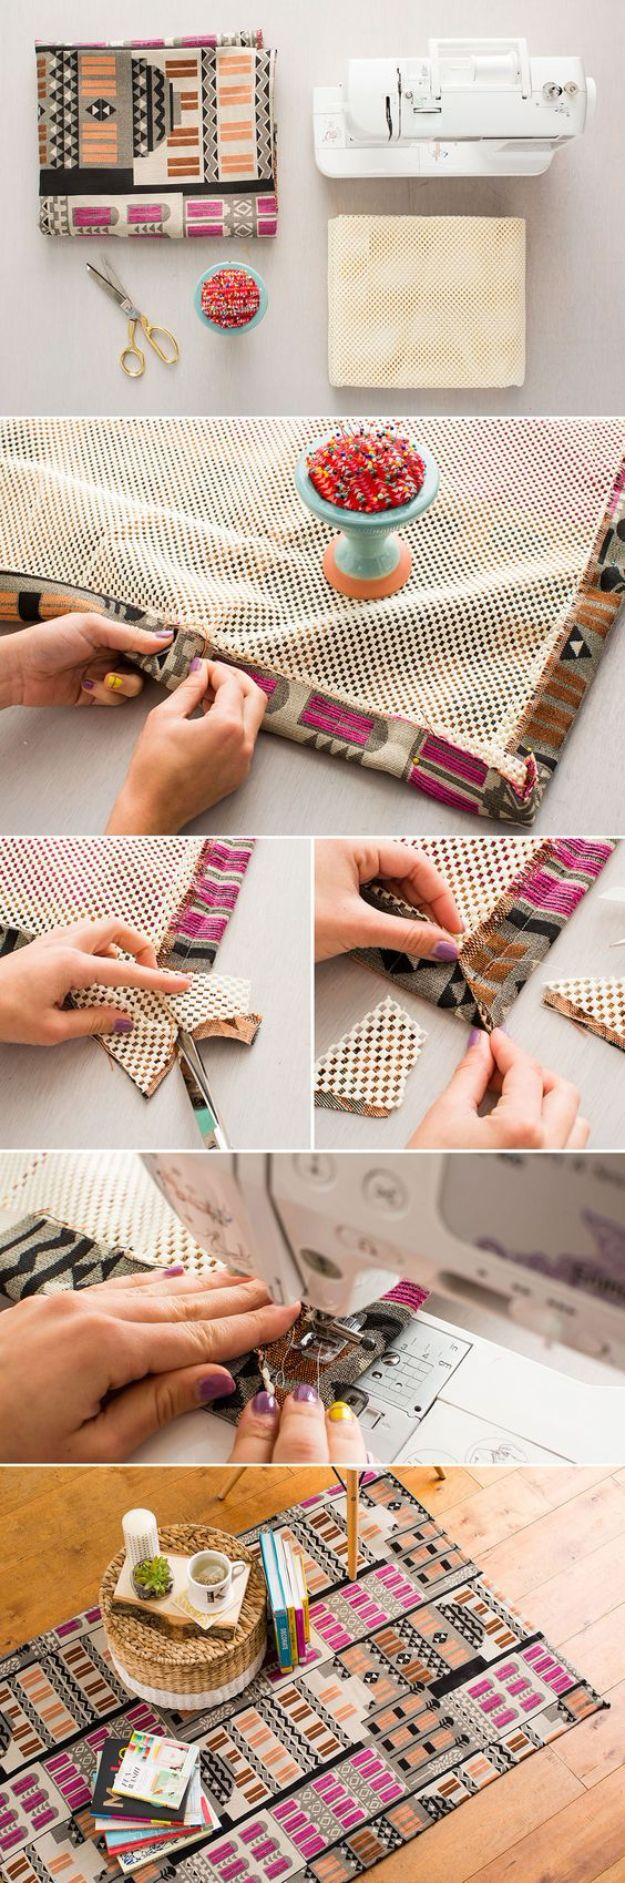 DIY Rugs - DIY Fabric Rug Hack - Ideas for An Easy Handmade Rug for Living Room, Bedroom, Kitchen Mat and Cheap Area Rugs You Can Make - Stencil Art Tutorial, Painting Tips, Fabric, Yarn, Old Denim Jeans, Rope, Tshirt, Pom Pom, Fur, Crochet, Woven and Outdoor Projects - Large and Small Carpet #diyrugs #diyhomedecor